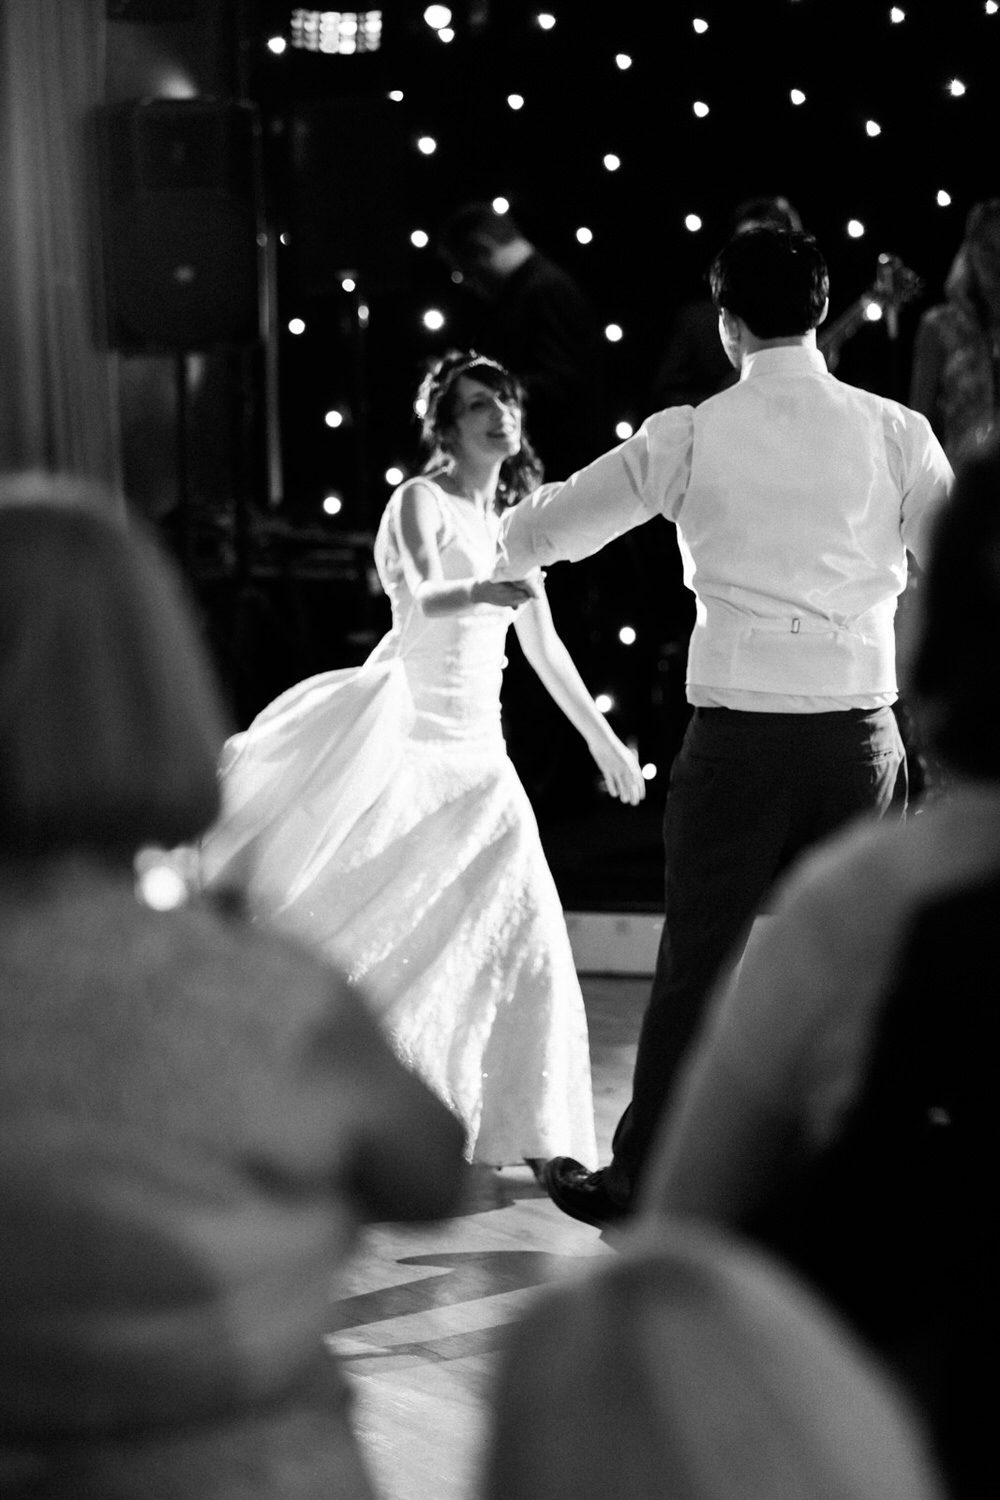 Special-Day-Photography-Manor-By-the-Lake-Cheltenham-The-first-dance-at-Manor-By-The-Lake-Black-and-white-images-of-the-first-dance.jpg